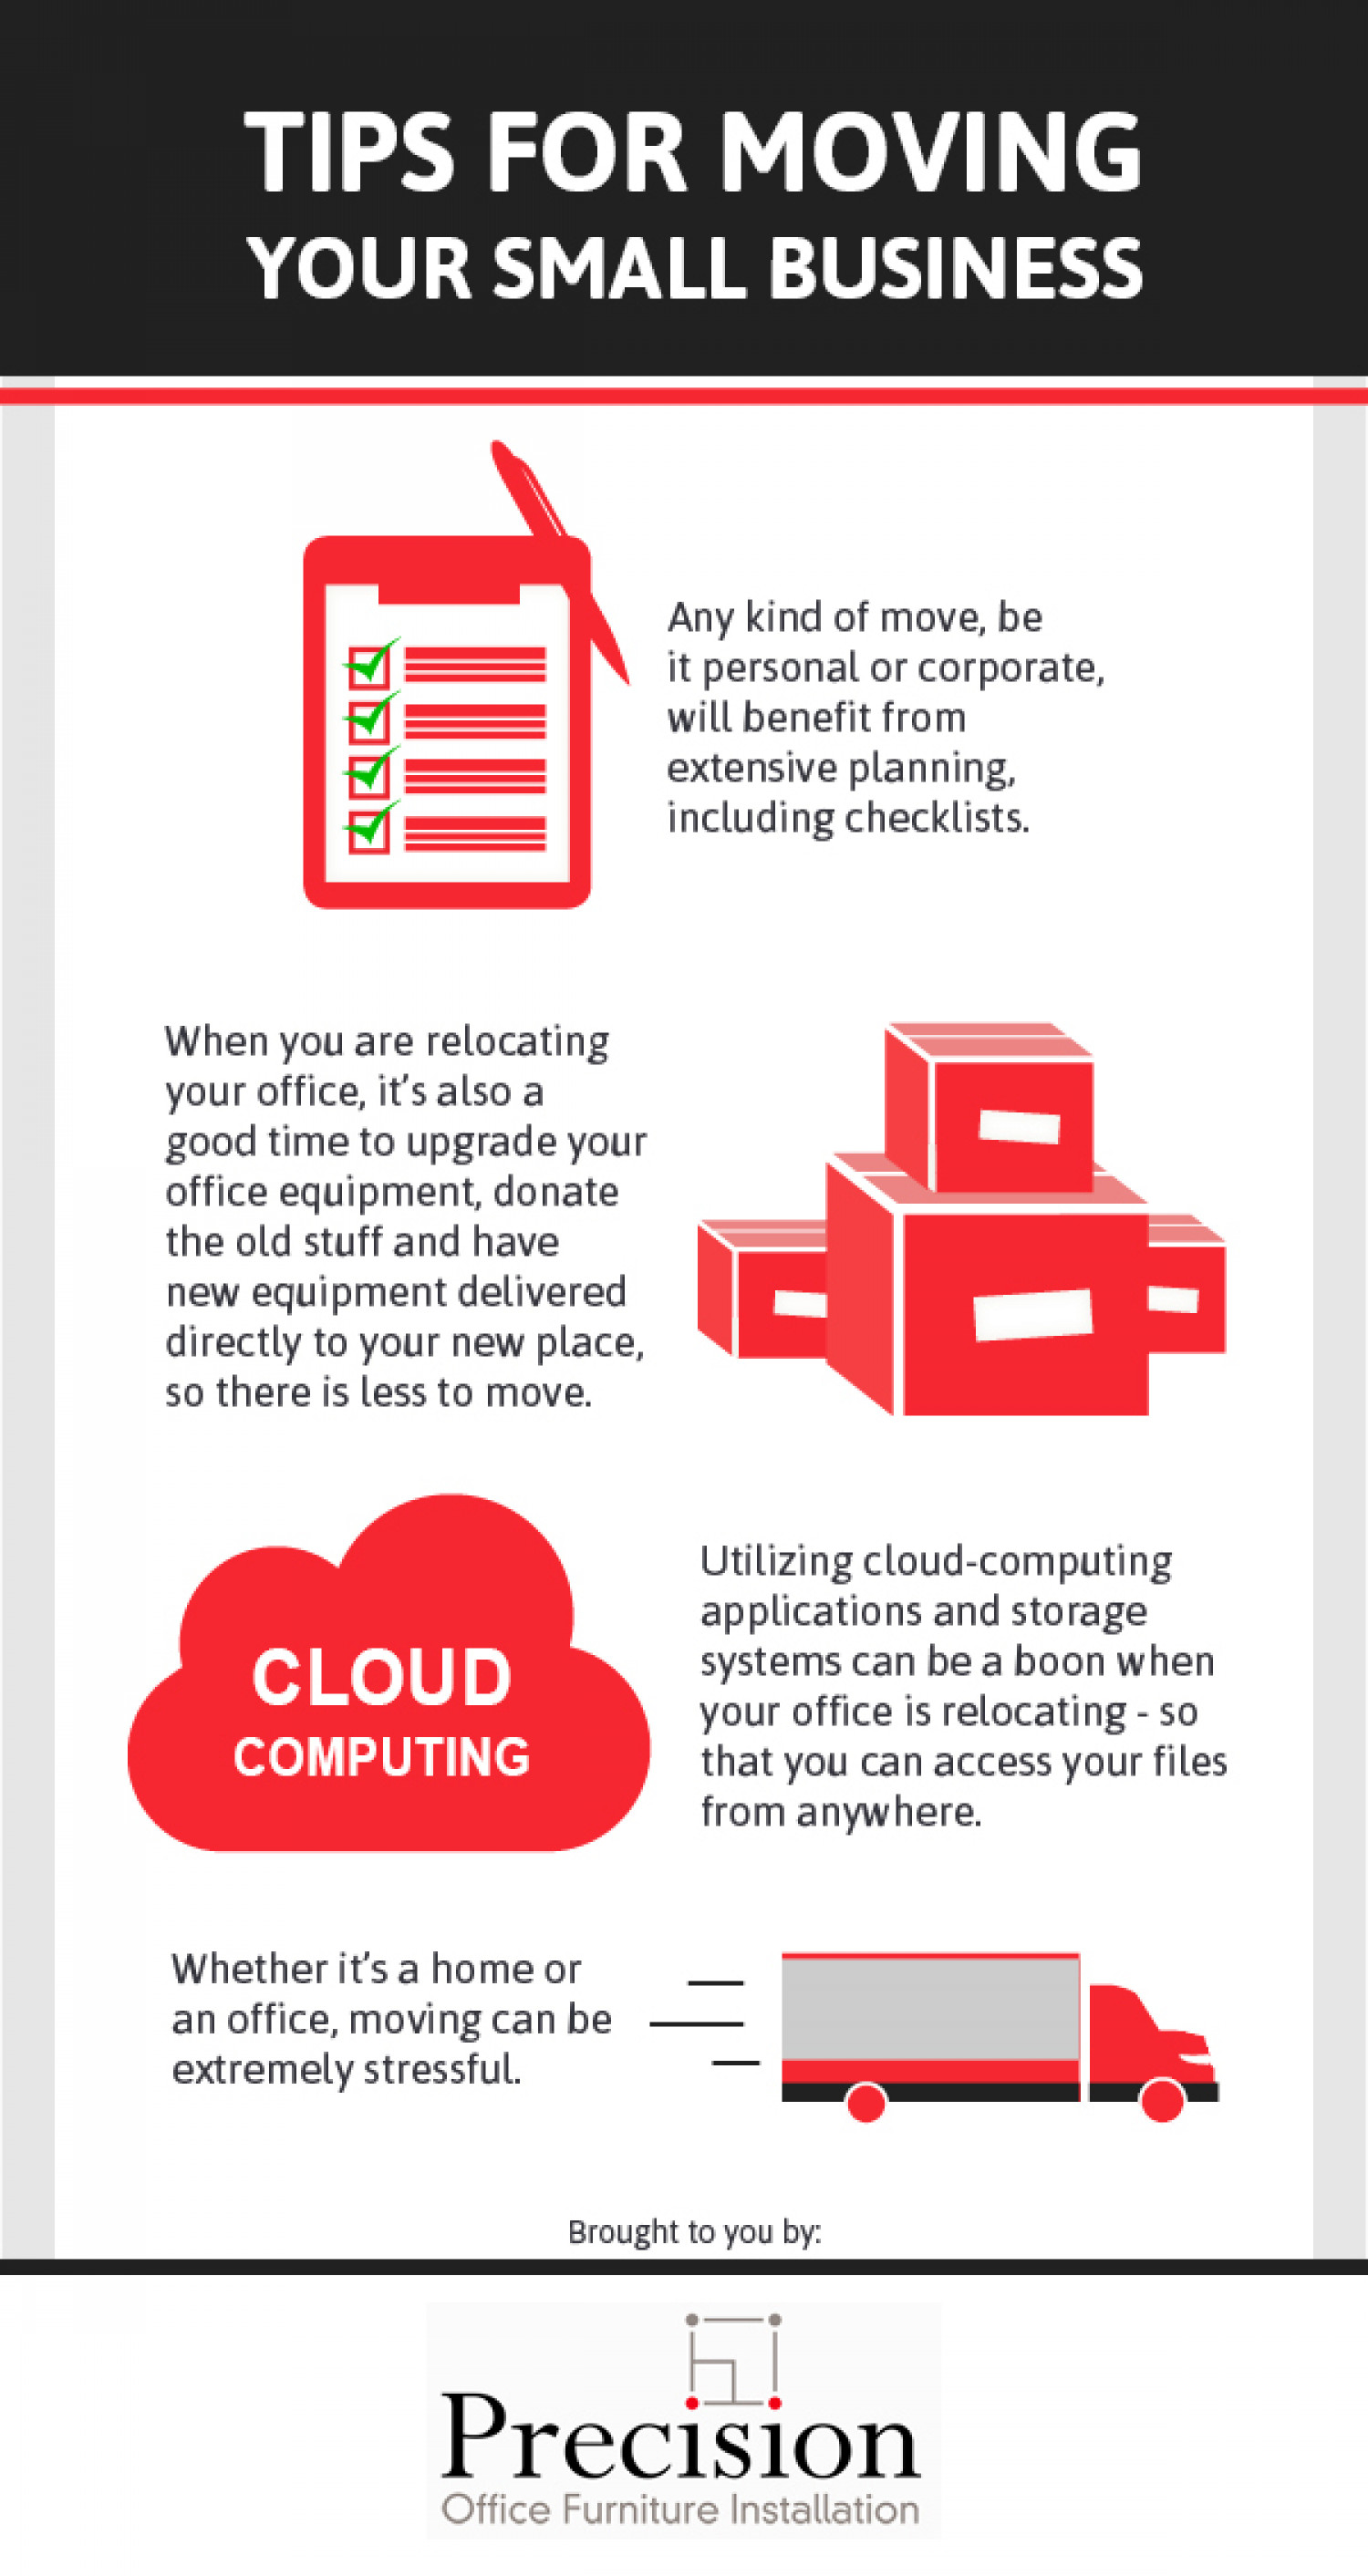 Tips For Moving Your Small Business Infographic